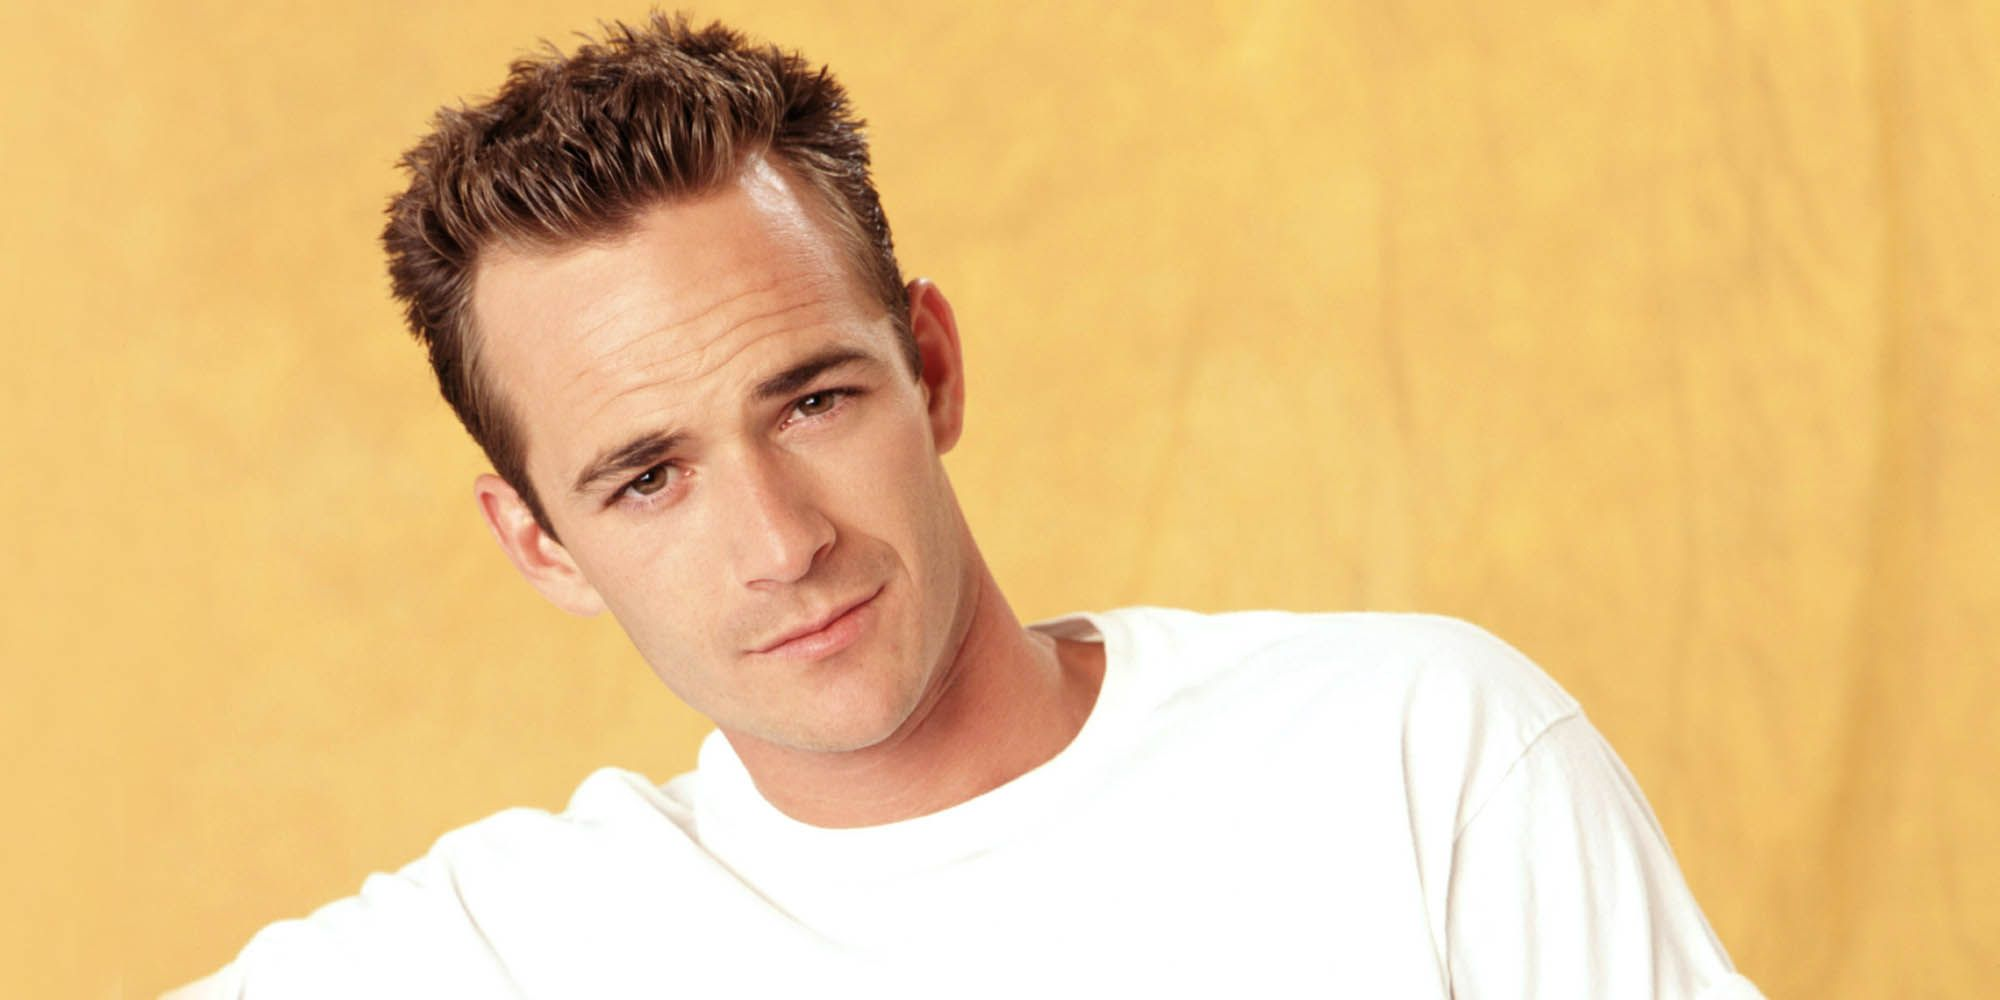 His role as Dylan McKay was surprisingly soulful for a show that didn't require it.